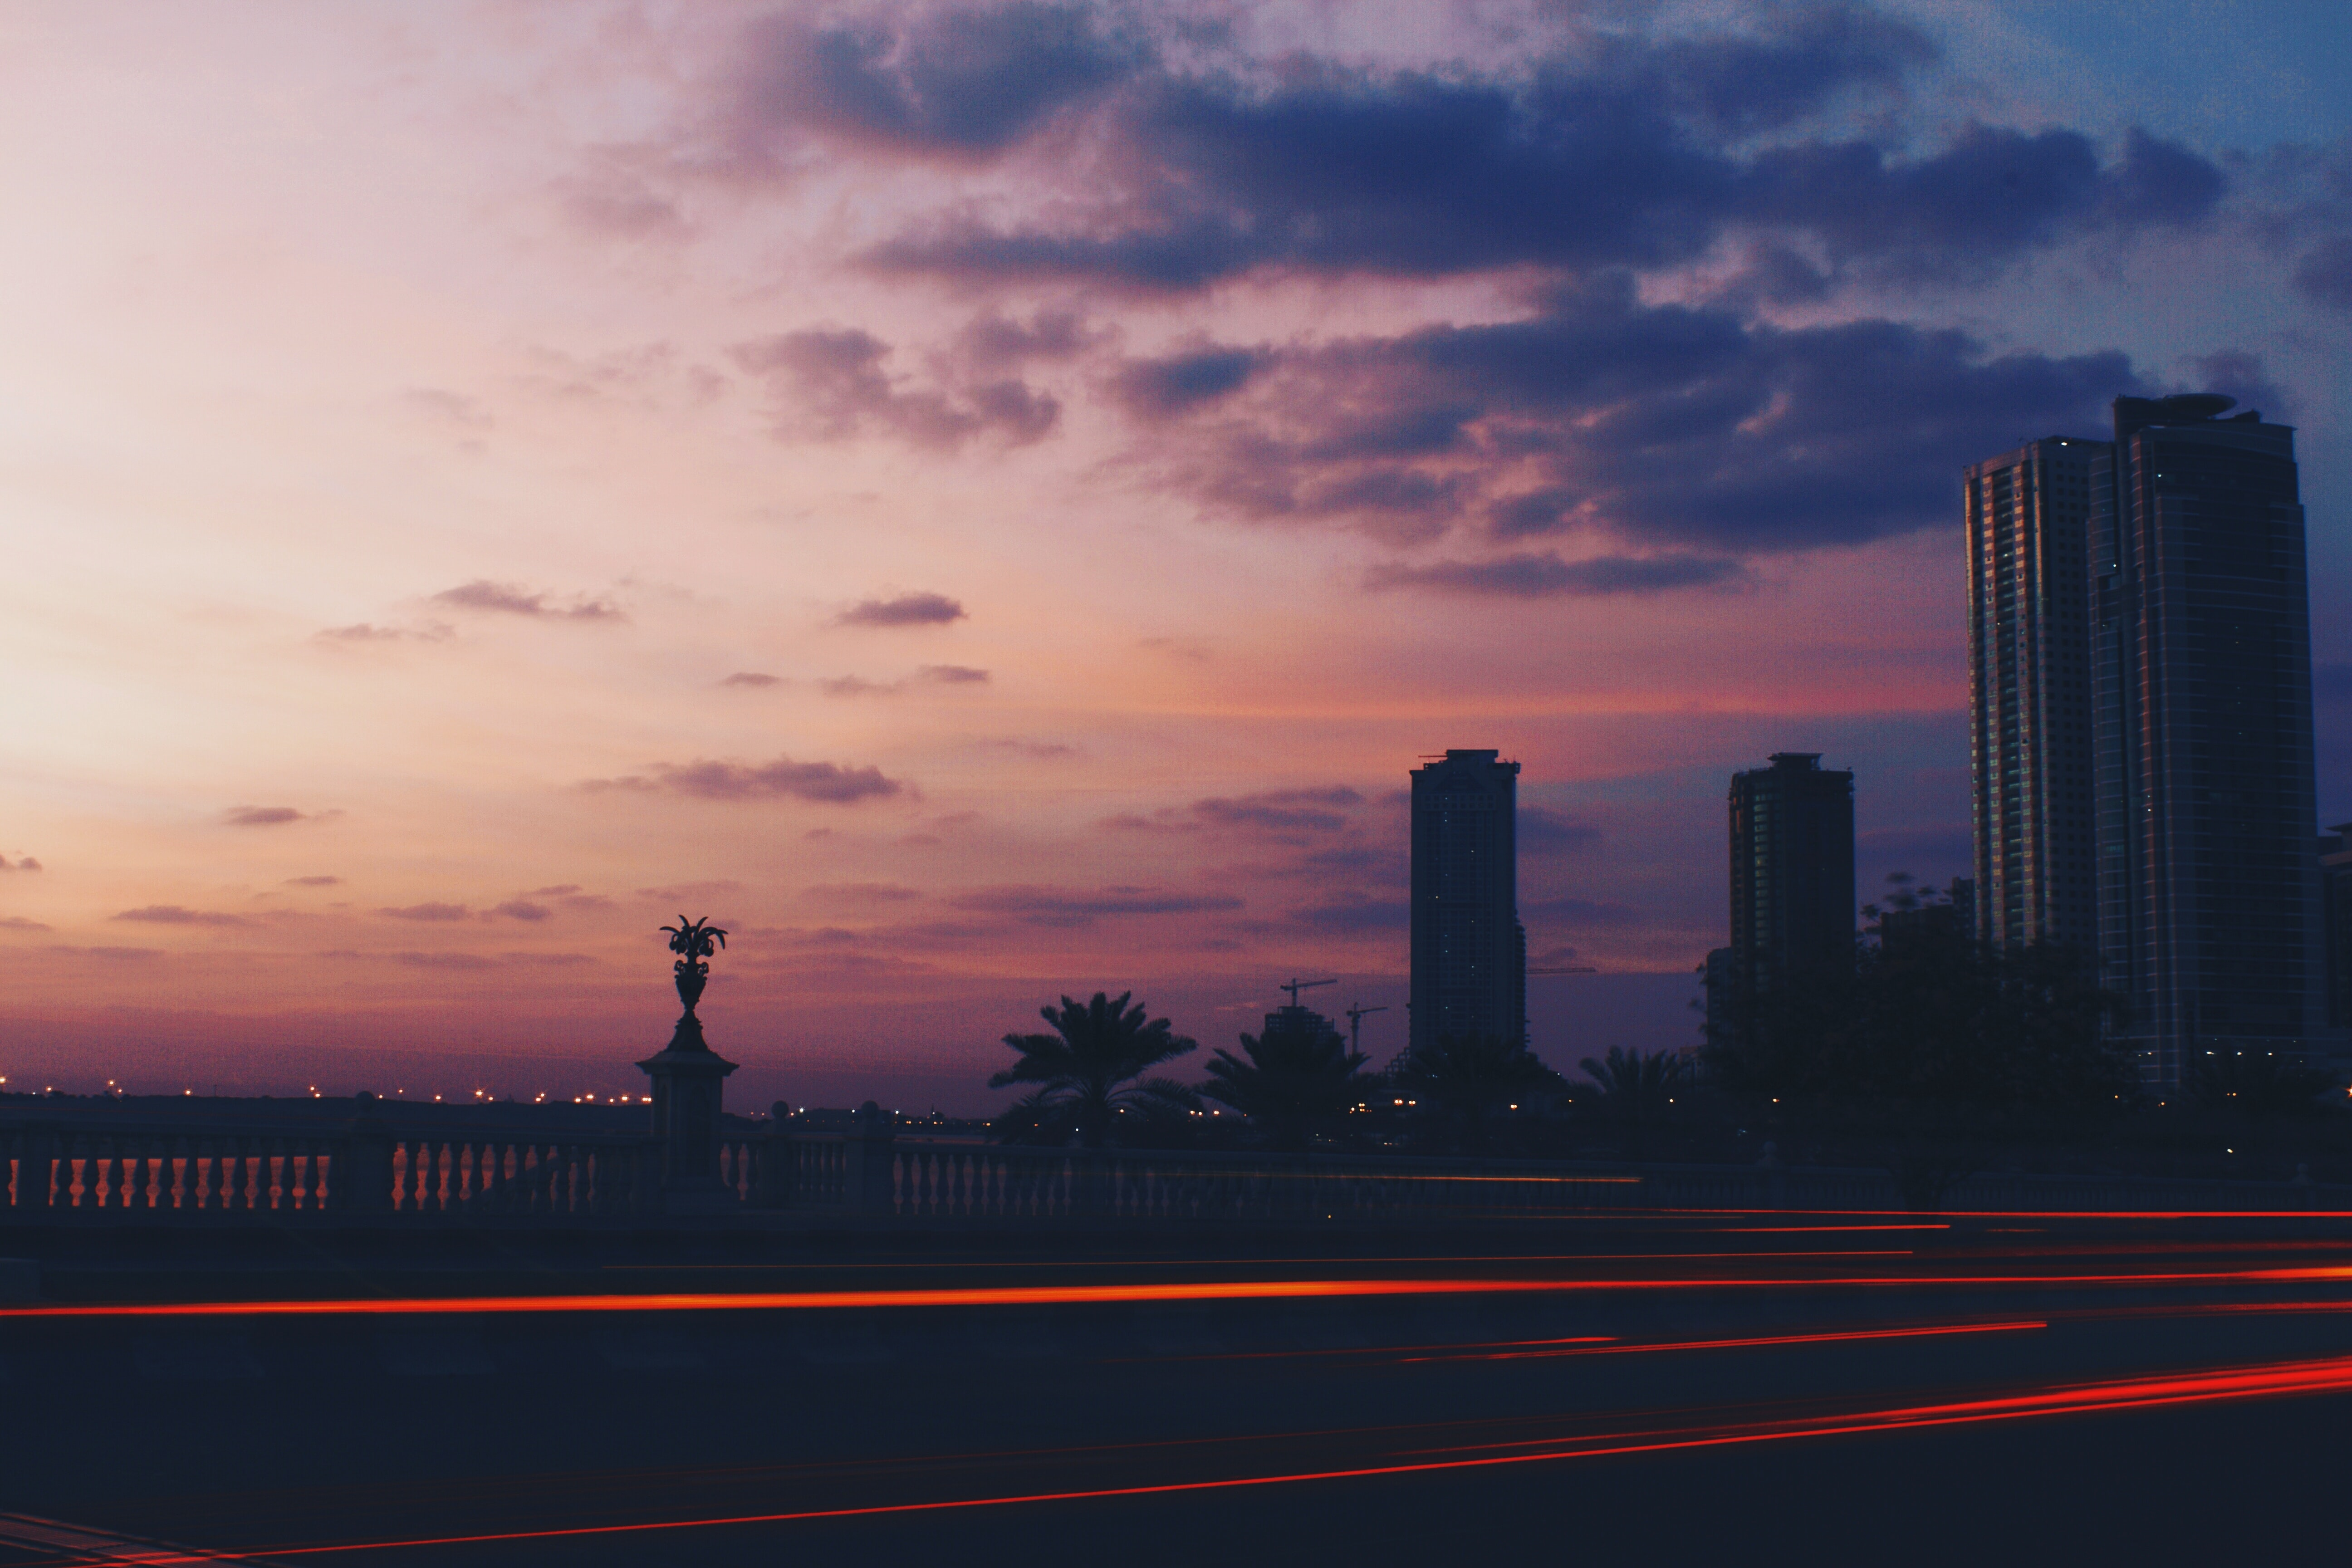 A city skyline, plants, and railing against pink and purple skies, red lights trailing with long exposure effect